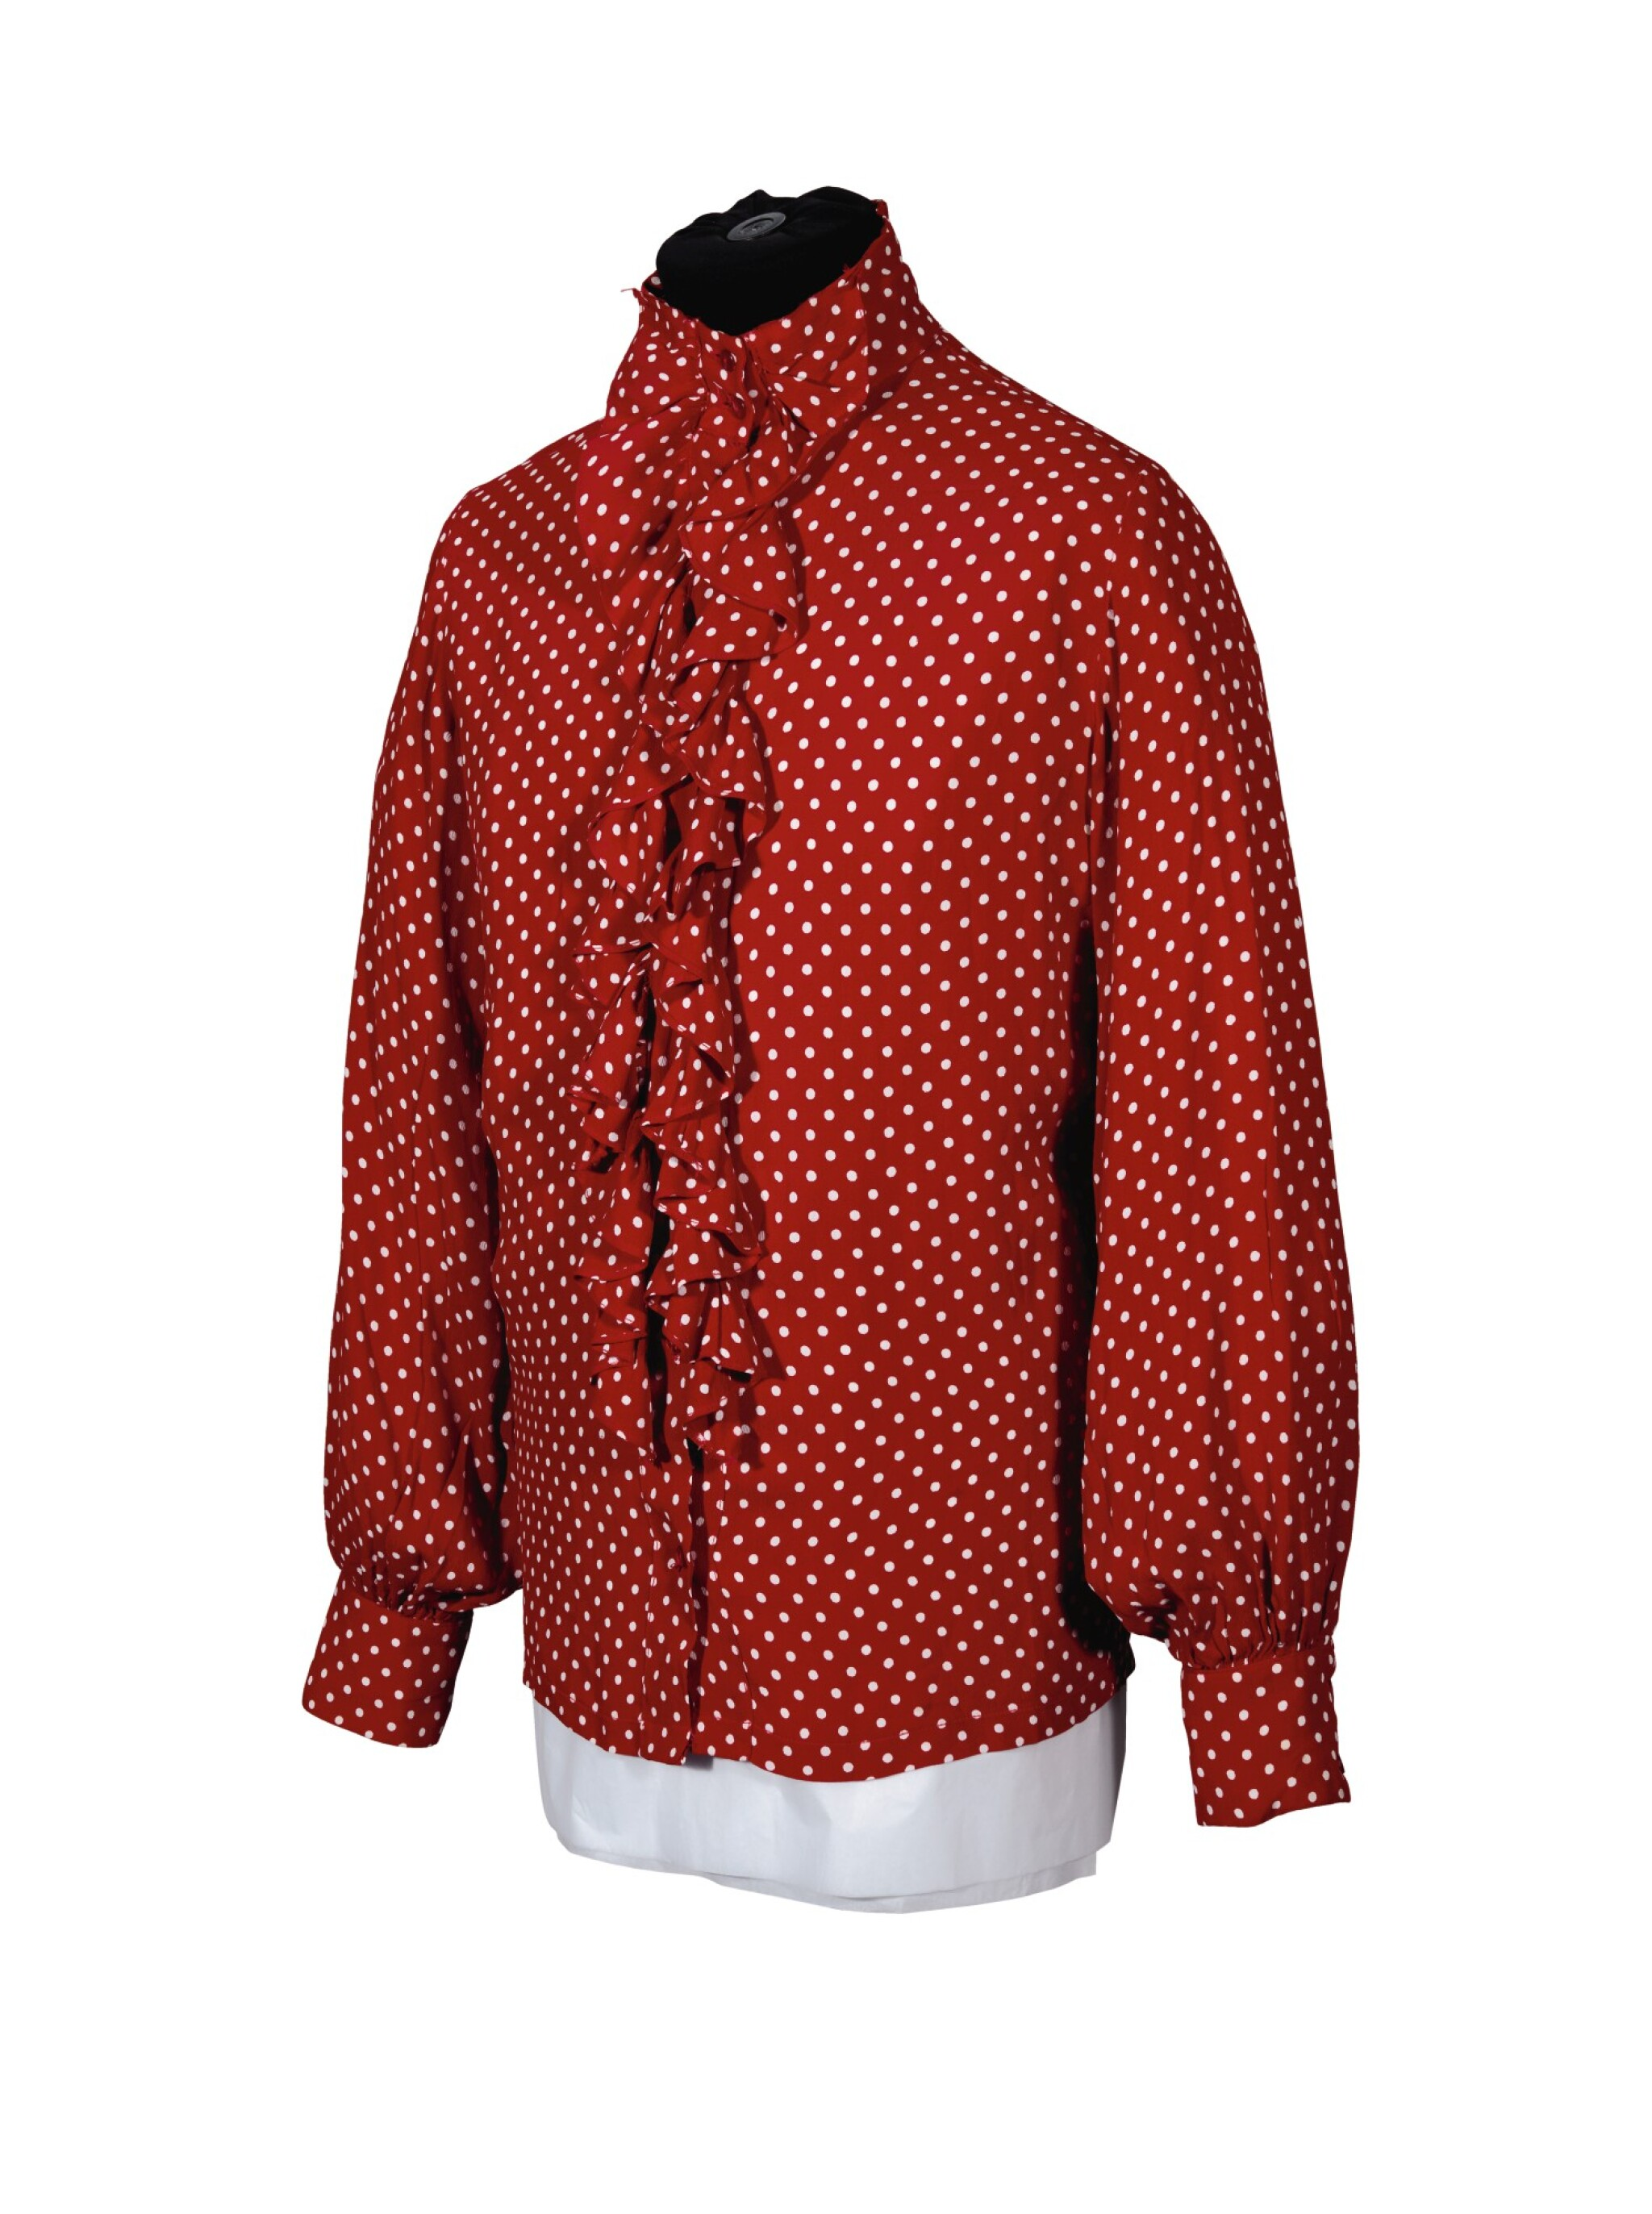 RINGO STARR   Red spotted 'ruffle' shirt, c.1968